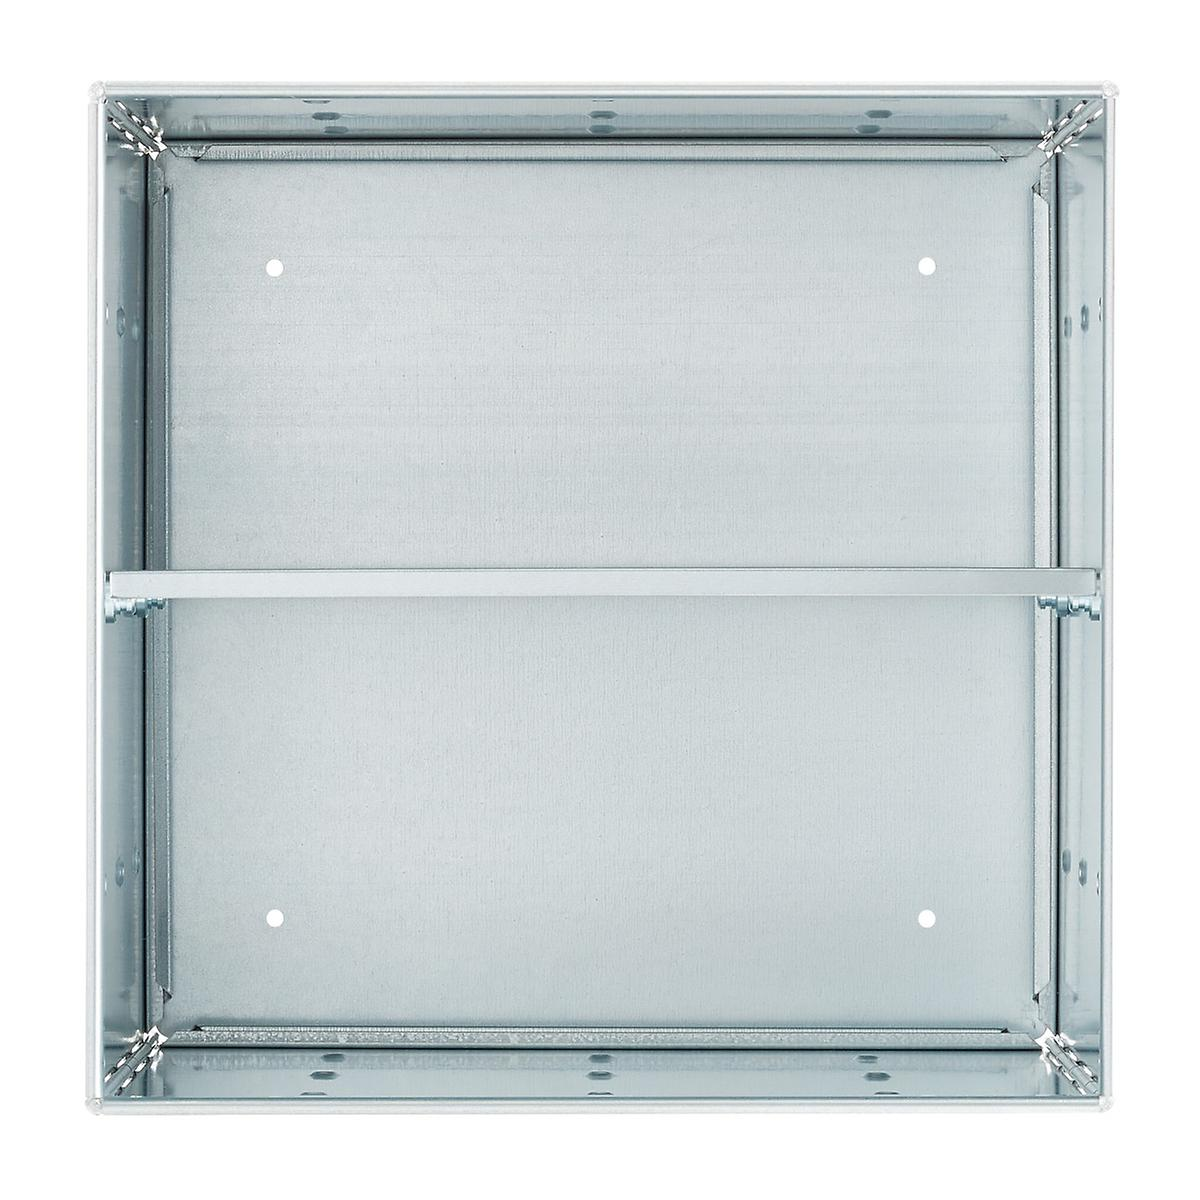 Galvanized QBO Steel Cube Shelf